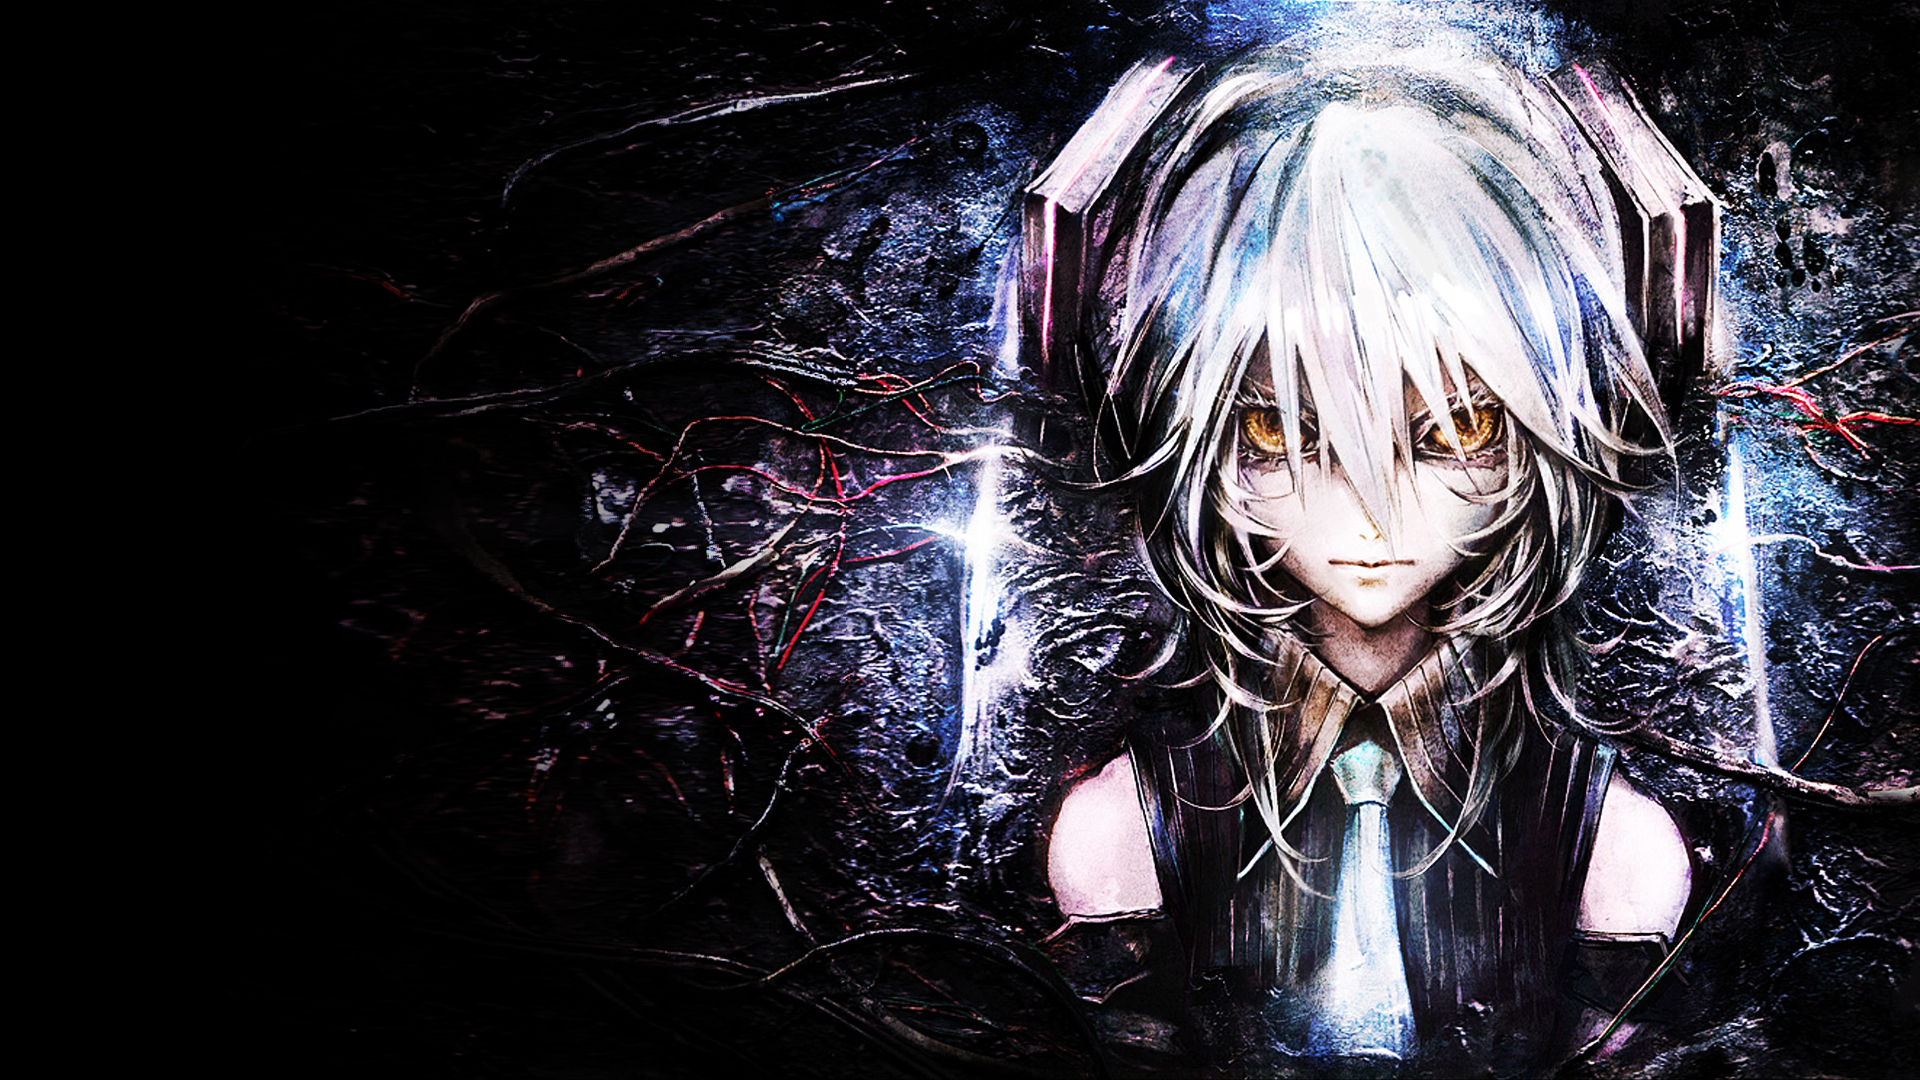 Awesome Anime Wallpapers HD